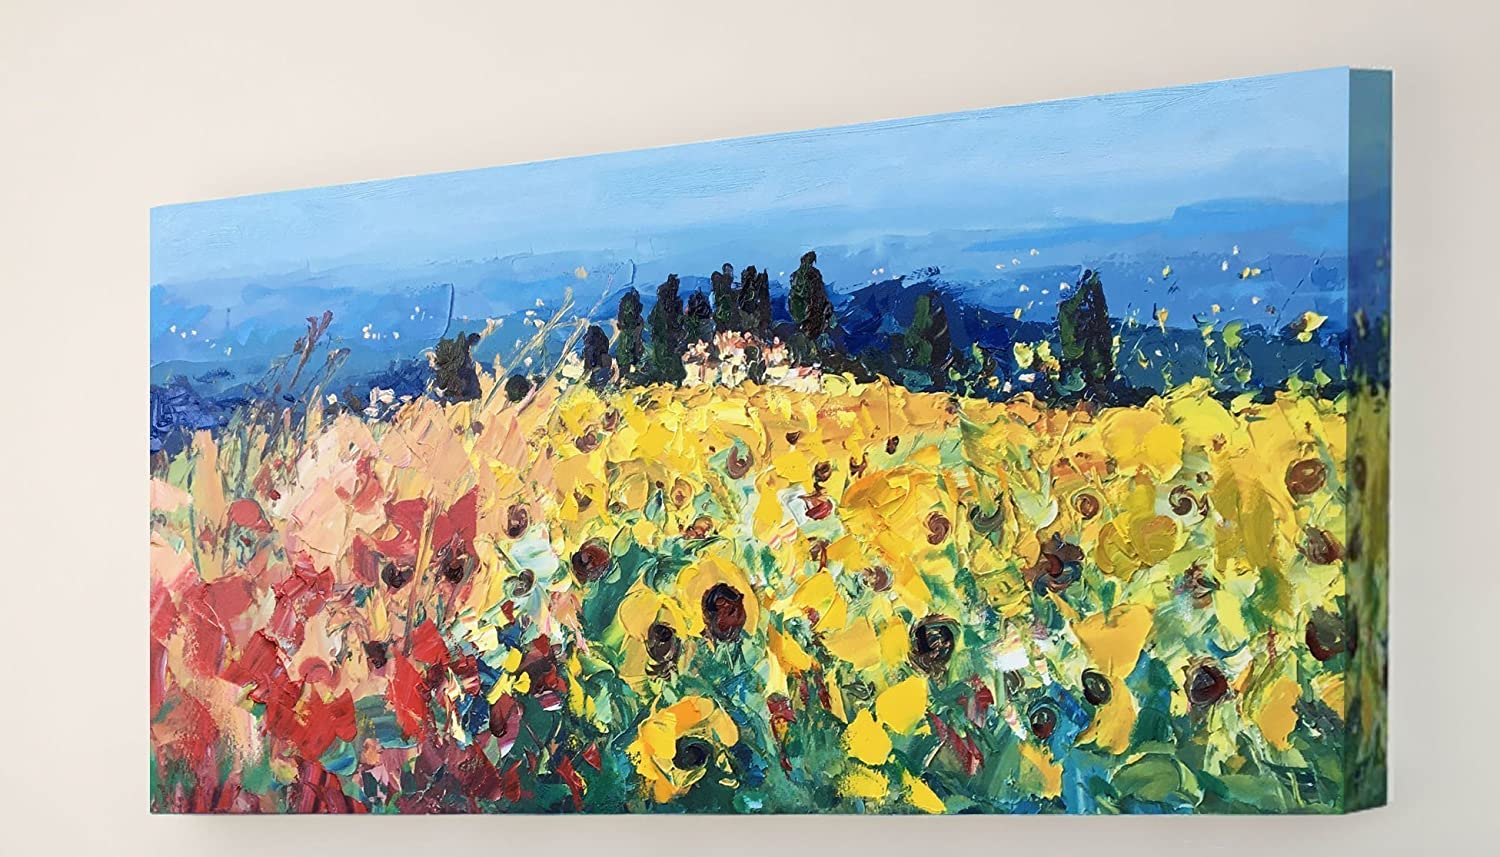 Amazon.com: Tuscan Landscape Painting One of a Kind Original Mixed ...